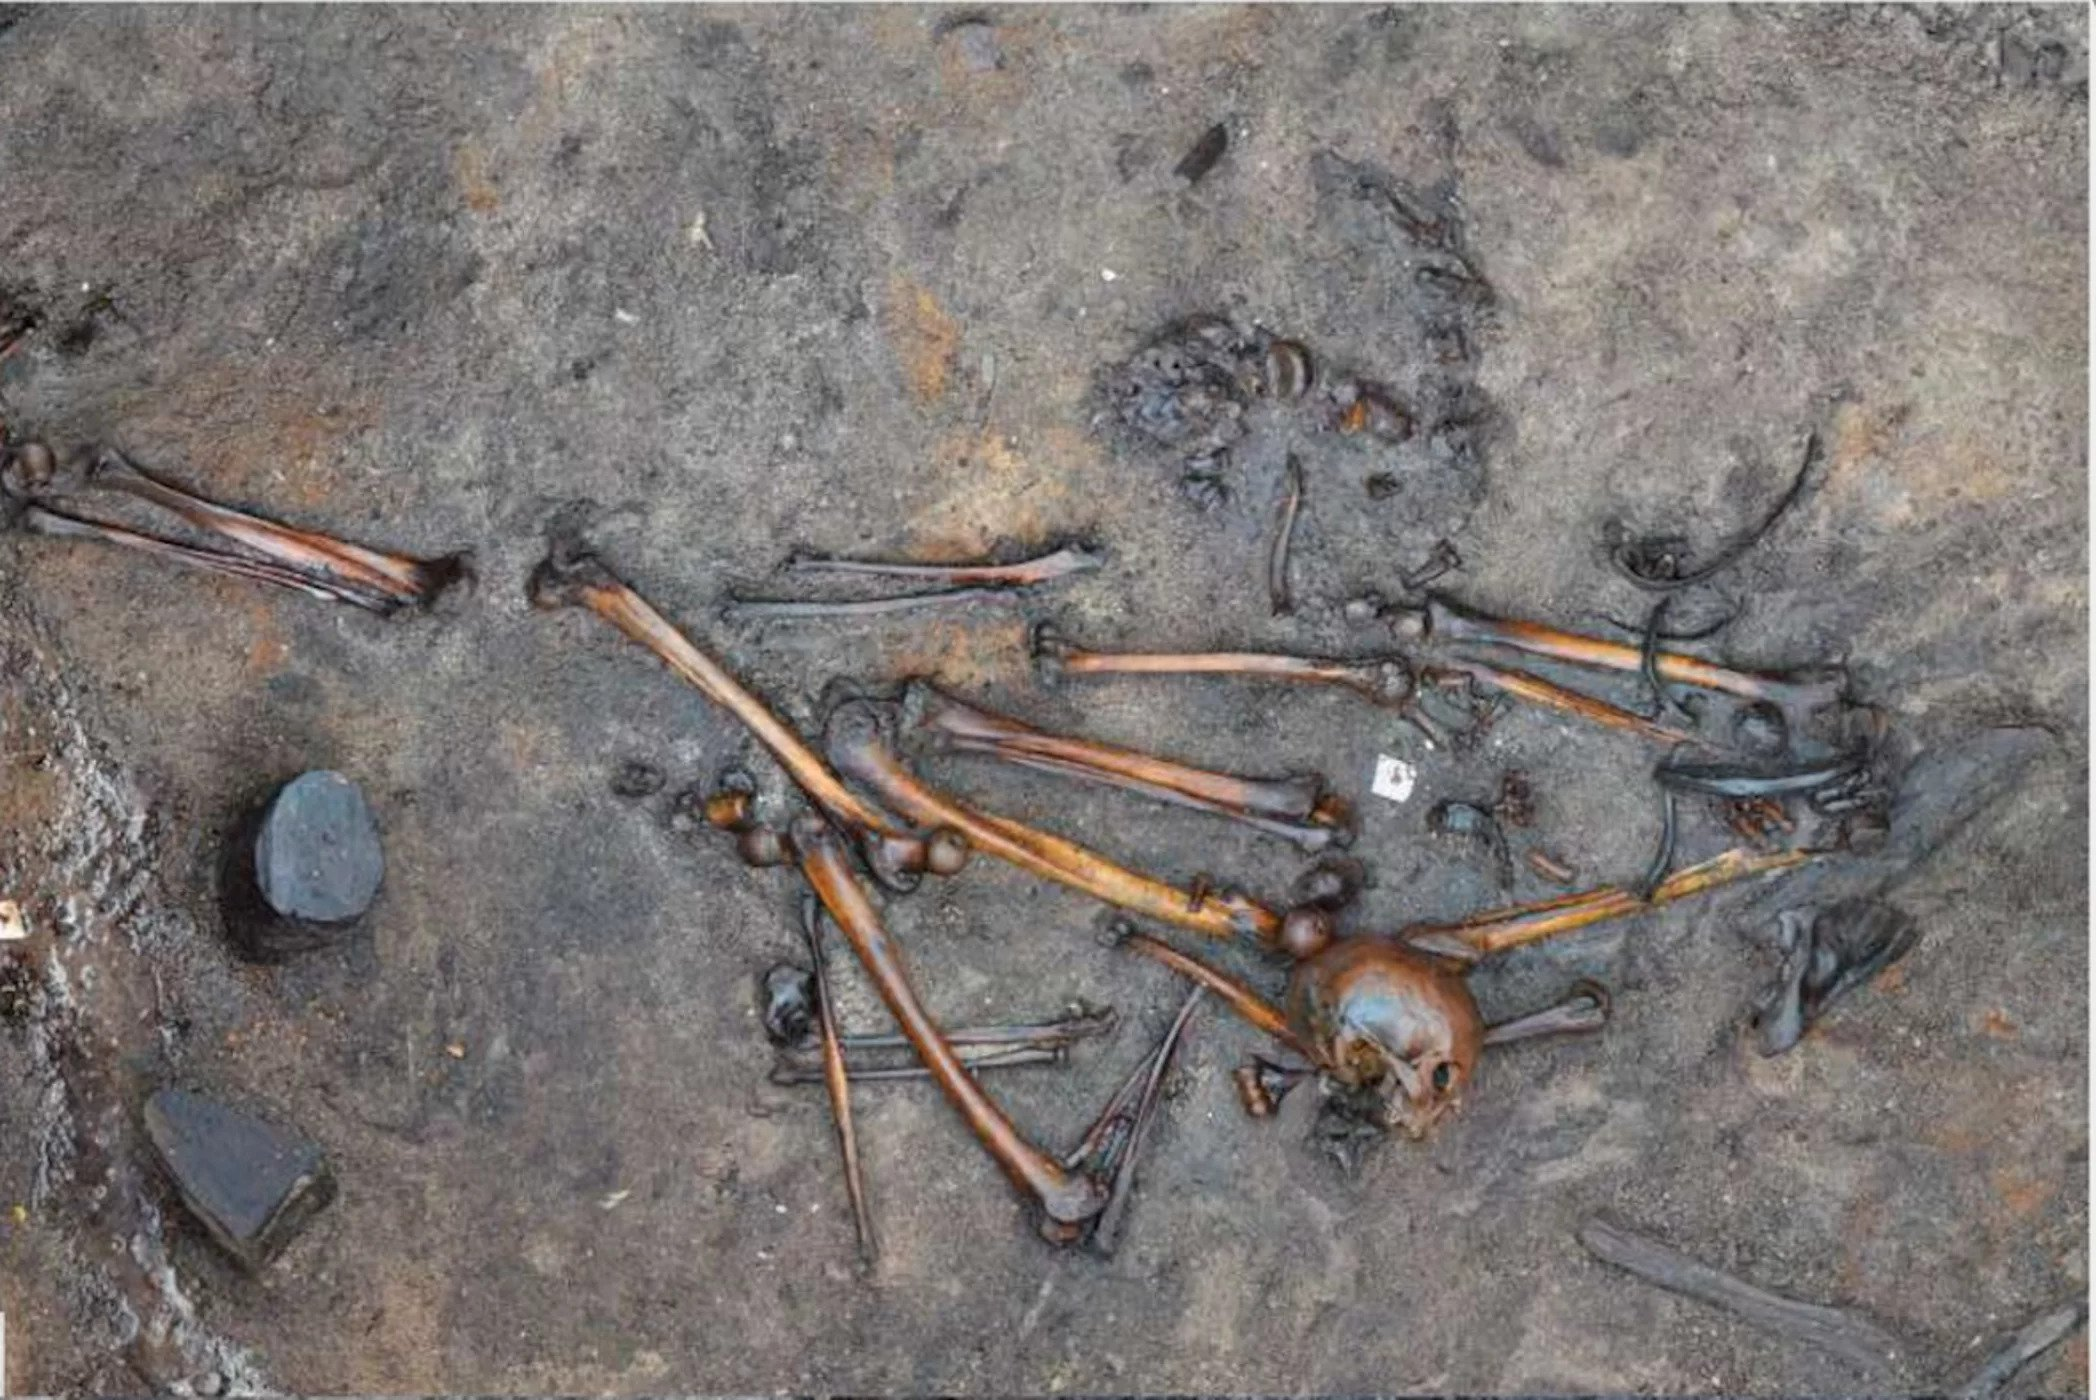 One of the nearly 400 slaughtered barbarians thought to be buried at Alken Enge in Denmark.